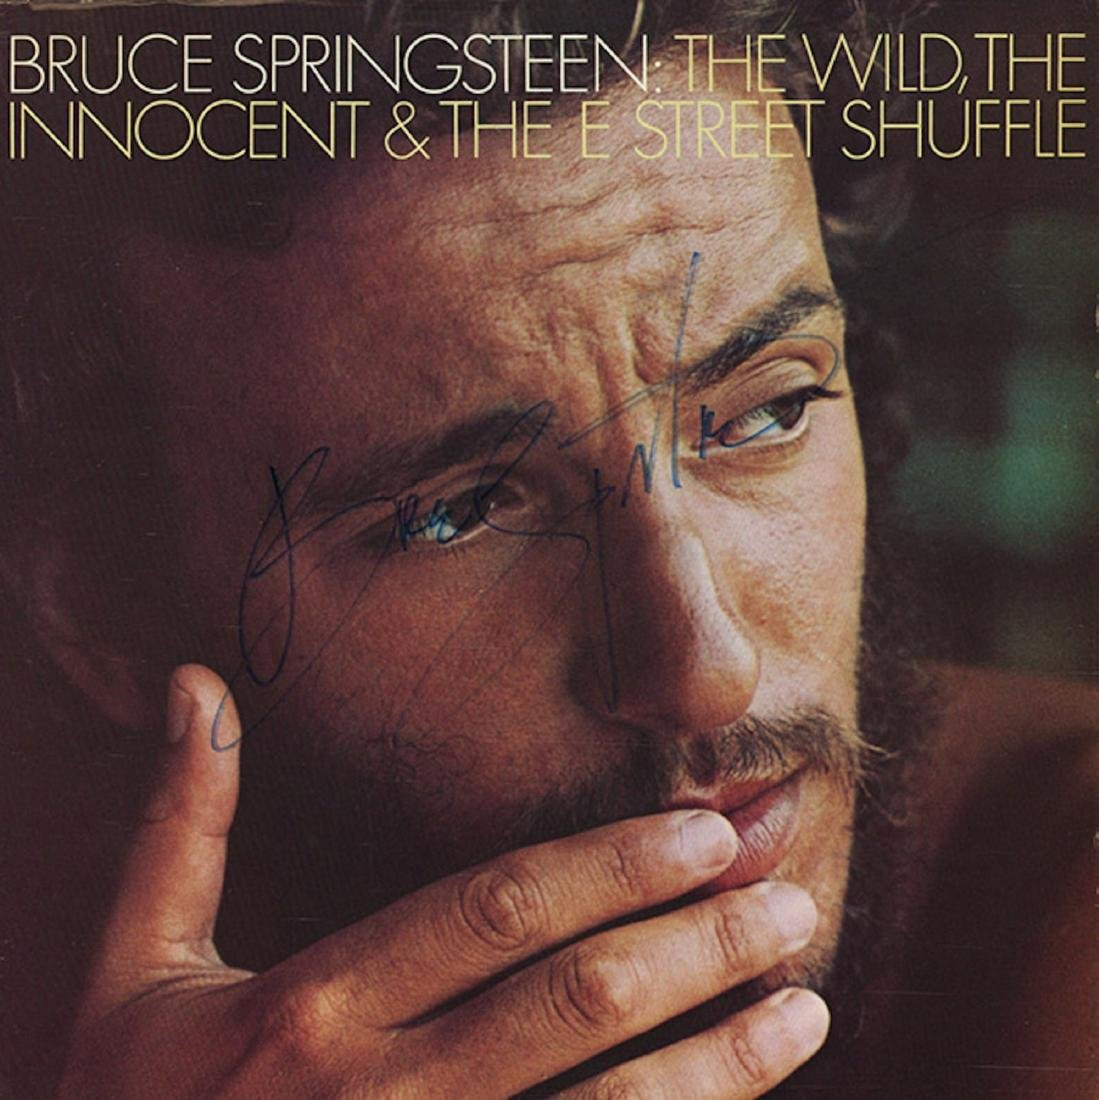 Signed Bruce Springsteen Wild Innocent and East Street